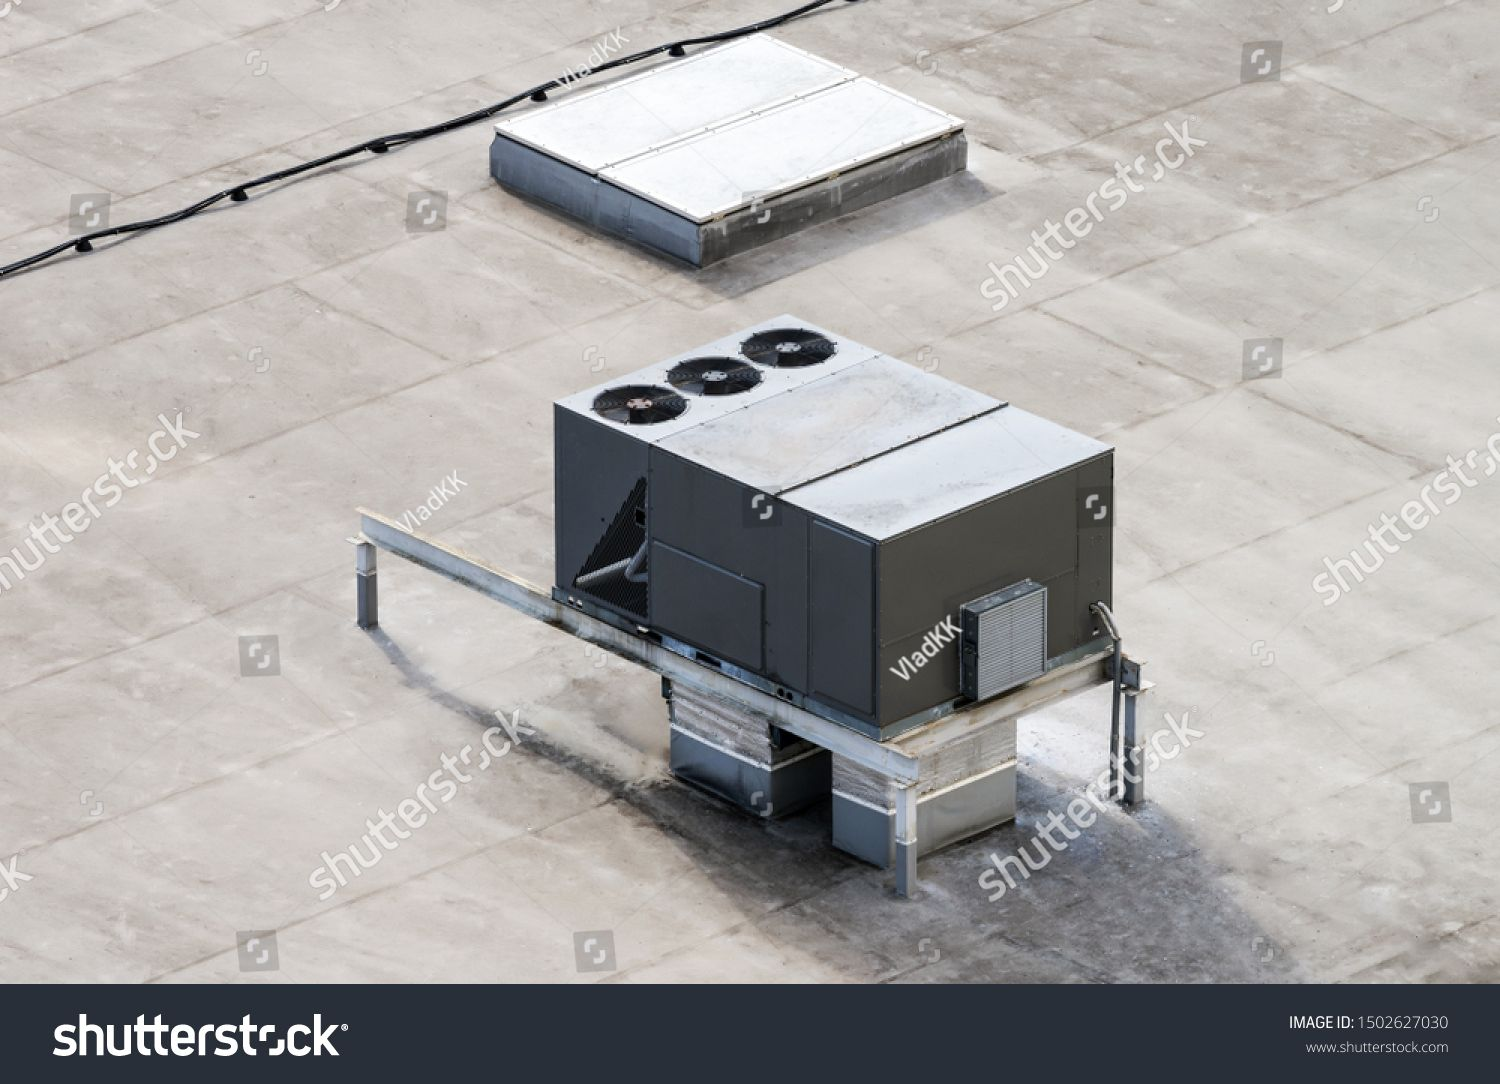 The external units of the commercial air conditioning and